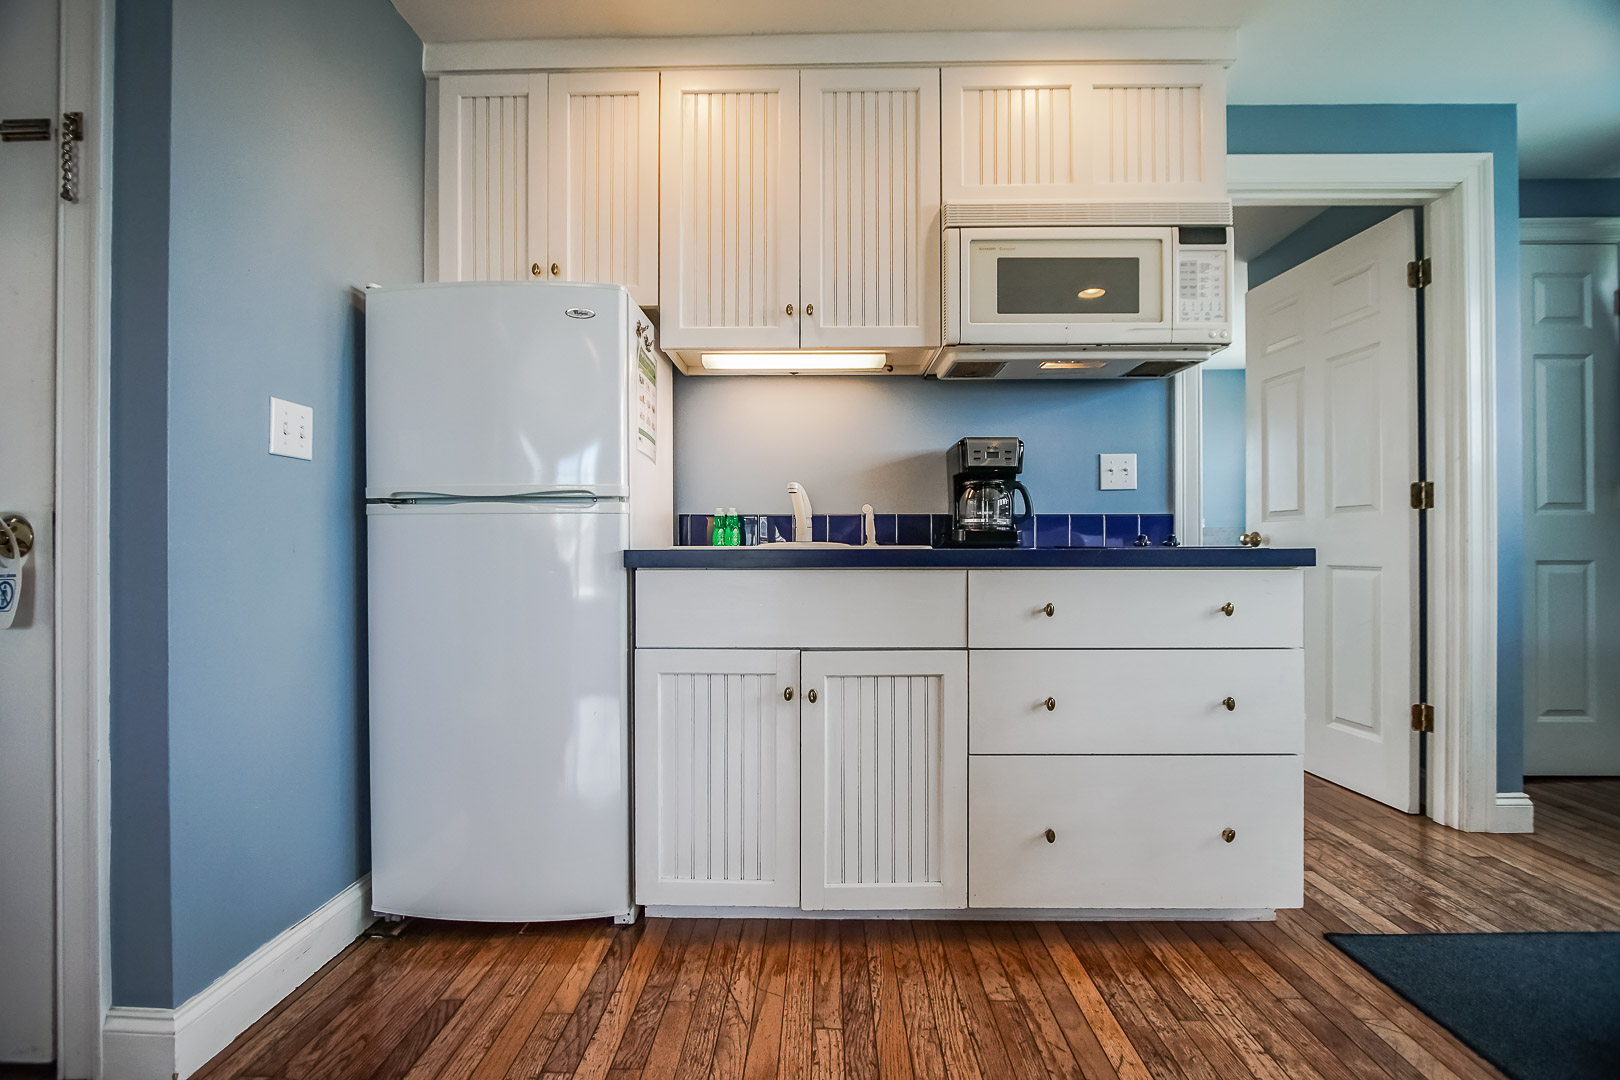 A standard kitchenette at VRI's Beachside Village Resort in Massachusetts.